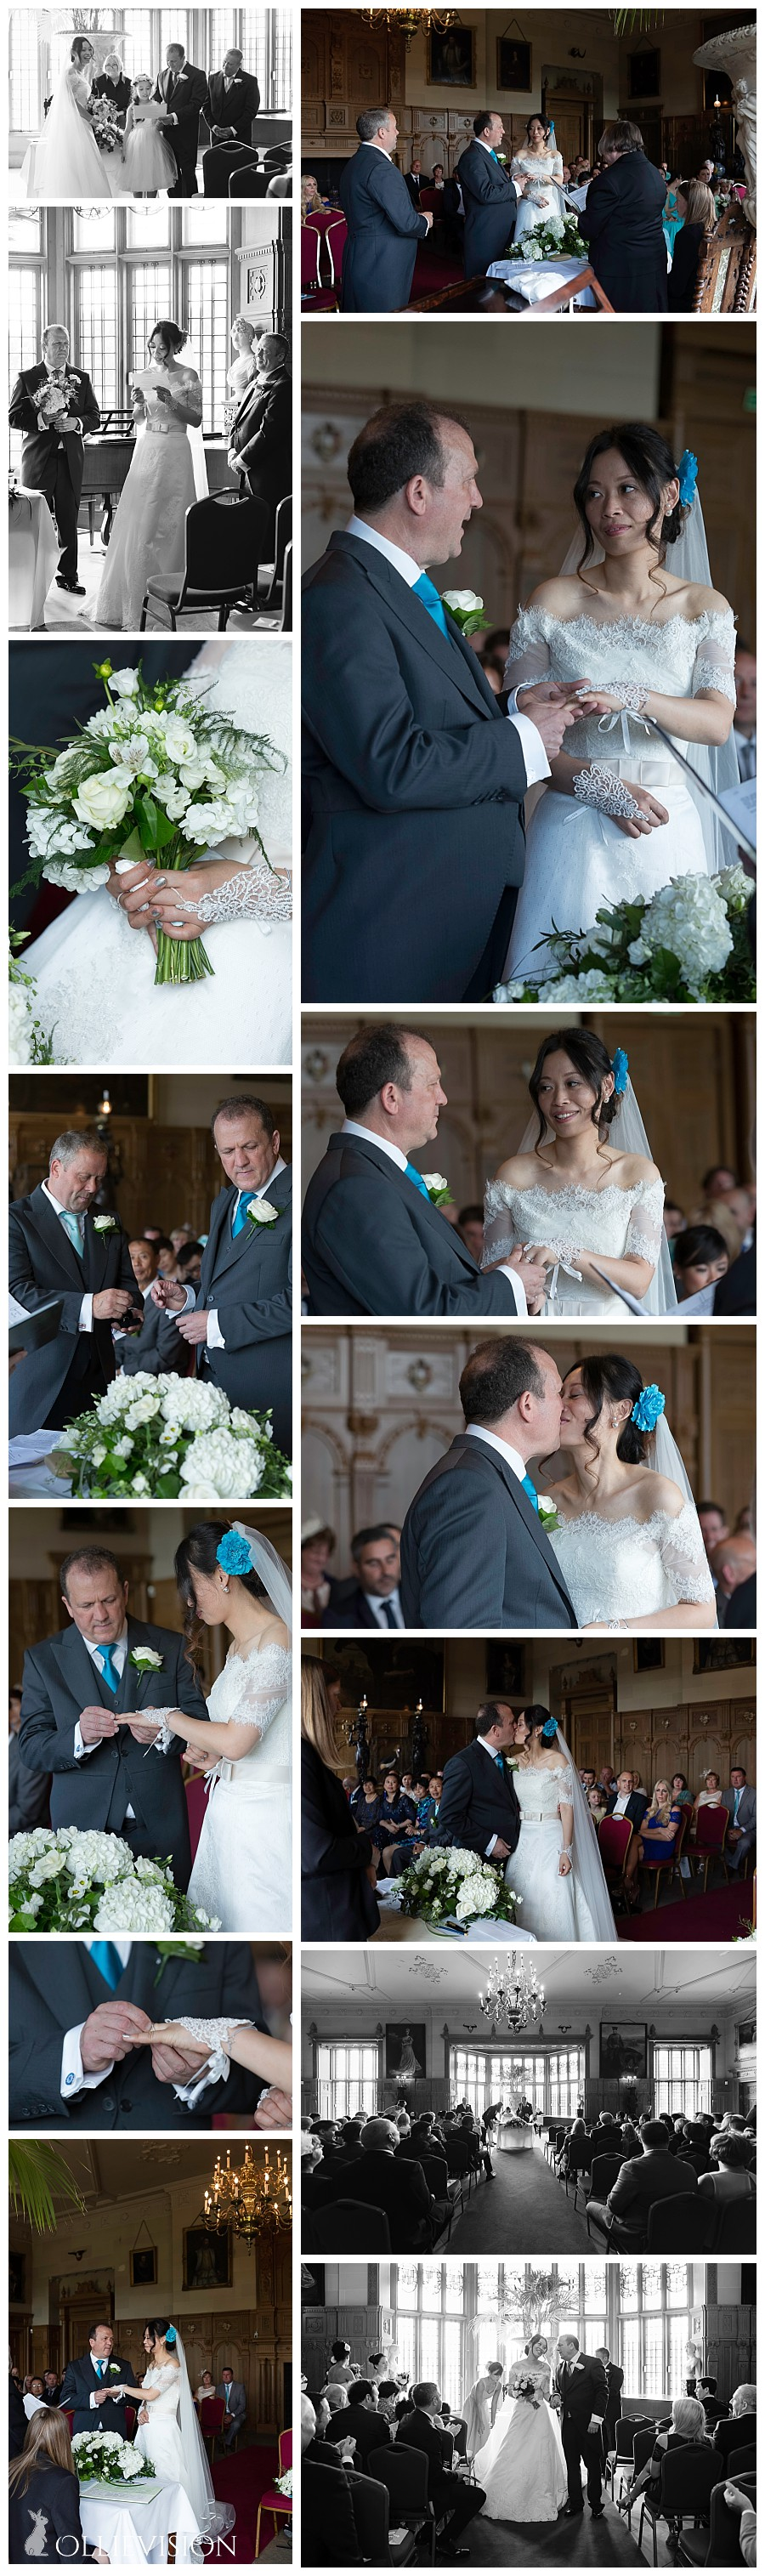 Great Hall Temple Newsam, weddings in the great hall, wedding ceremony temple newsam